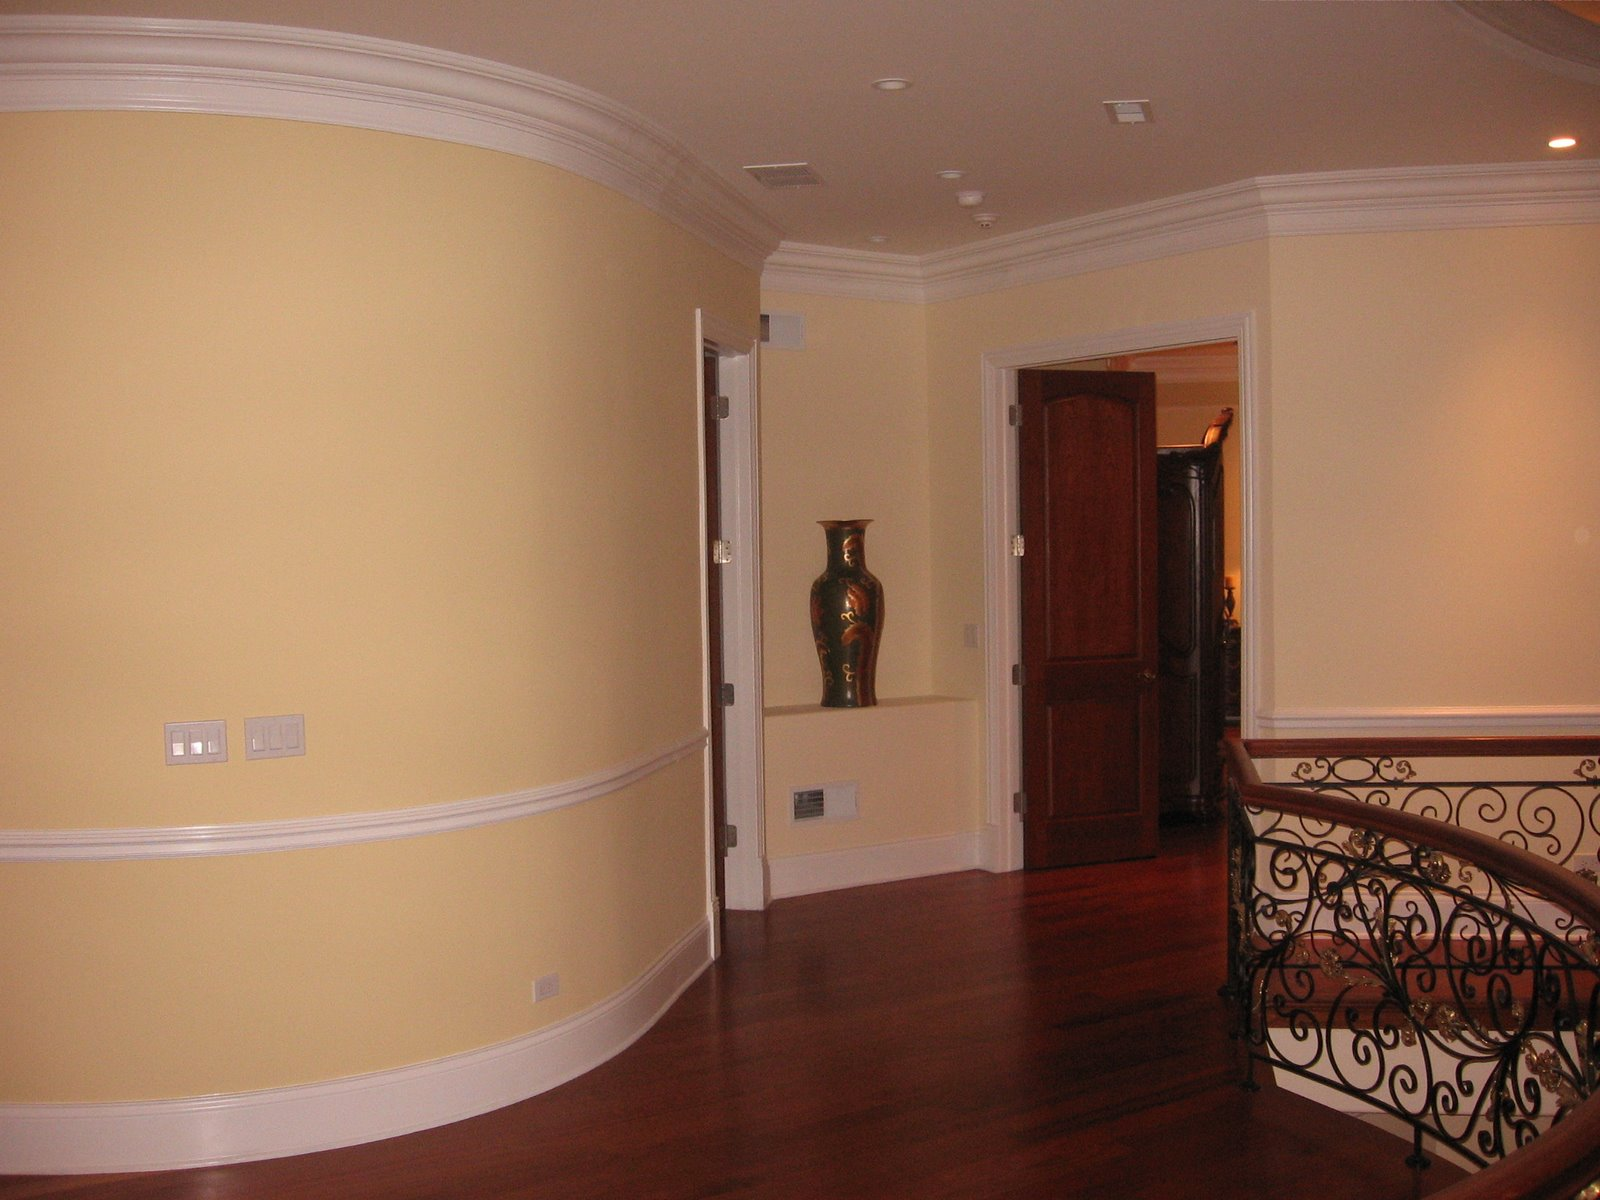 The Interior Painting Specialists Americhoice Are Just What You